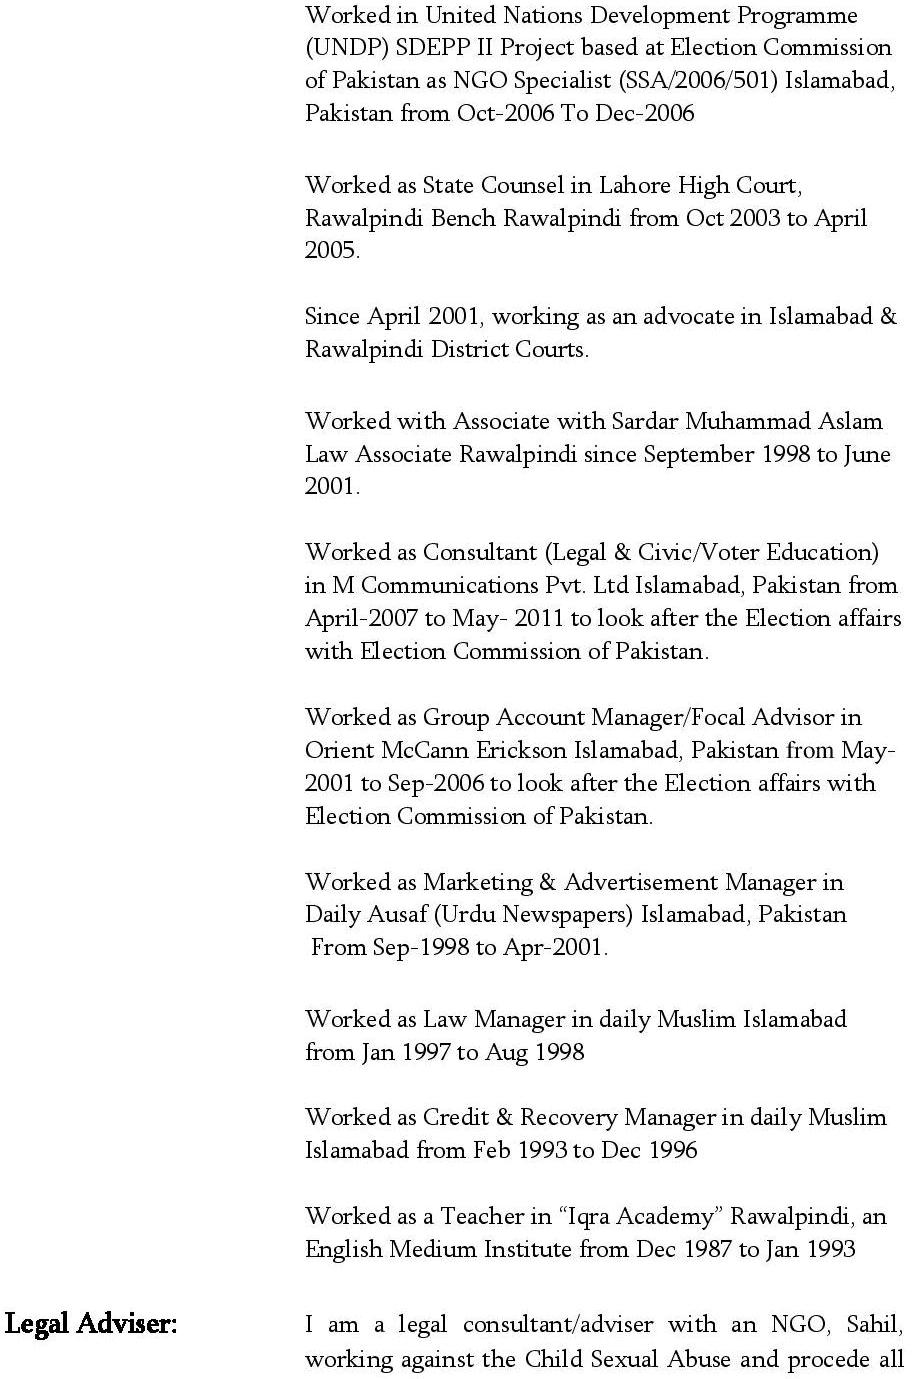 safeer-advocate-cv-4-page-003